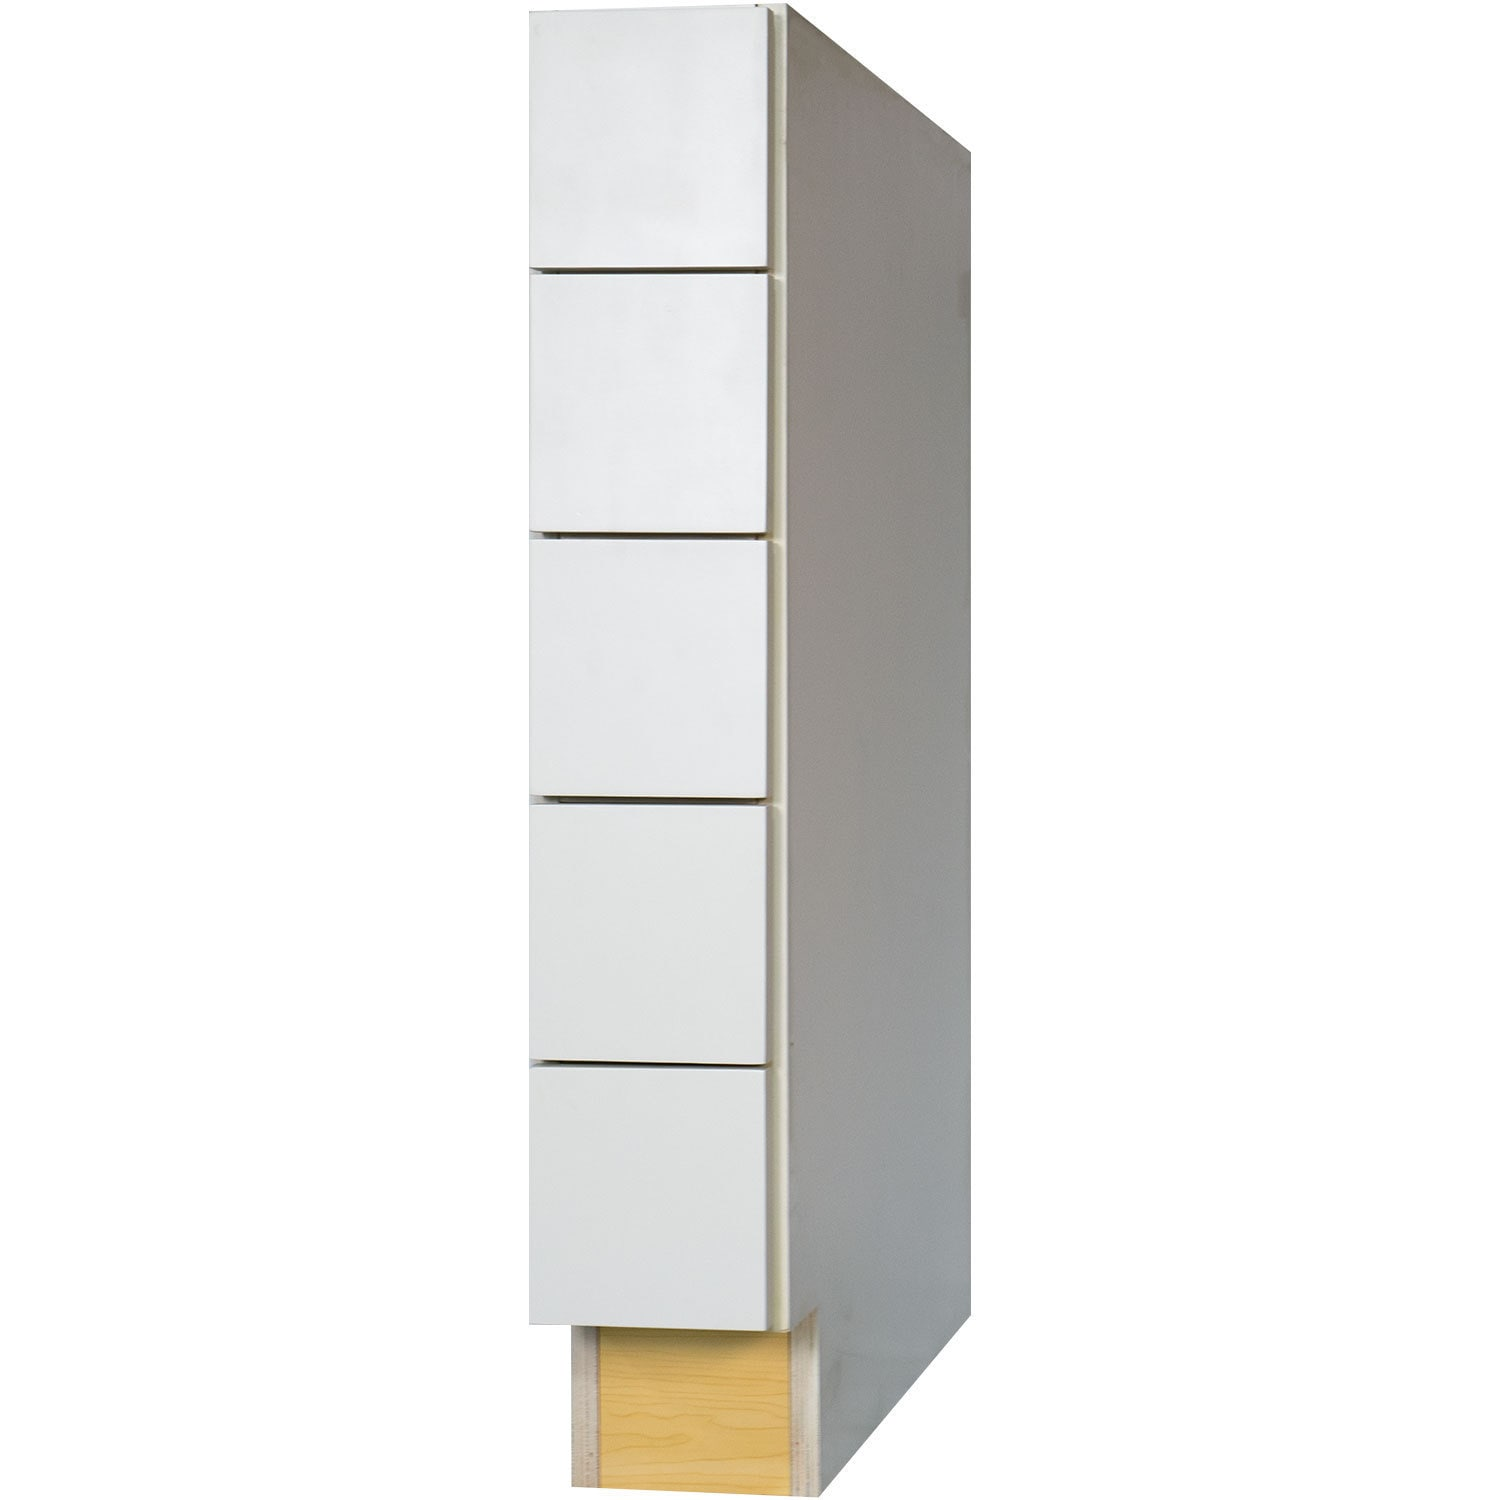 Shop Everyday Cabinets 6-inch White Shaker Base e 5 Drawer ... on 28 inch kitchen cabinet, 6 inch curtains, 7 inch kitchen cabinet, 8 inch kitchen cabinet, 6 inch furniture, 22 inch kitchen cabinet, 16 inch kitchen cabinet, 34 inch kitchen cabinet, 6 inch bookcase, 72 inch kitchen cabinet, 46 inch kitchen cabinet, 6 base cabinet, 10 inch kitchen cabinet, 6 inch glass, 6 inch heater, 3 inch kitchen cabinet, 6 inch wooden door, 84 inch kitchen base cabinet, 6 inch fence, 6 inch wall cabinet,